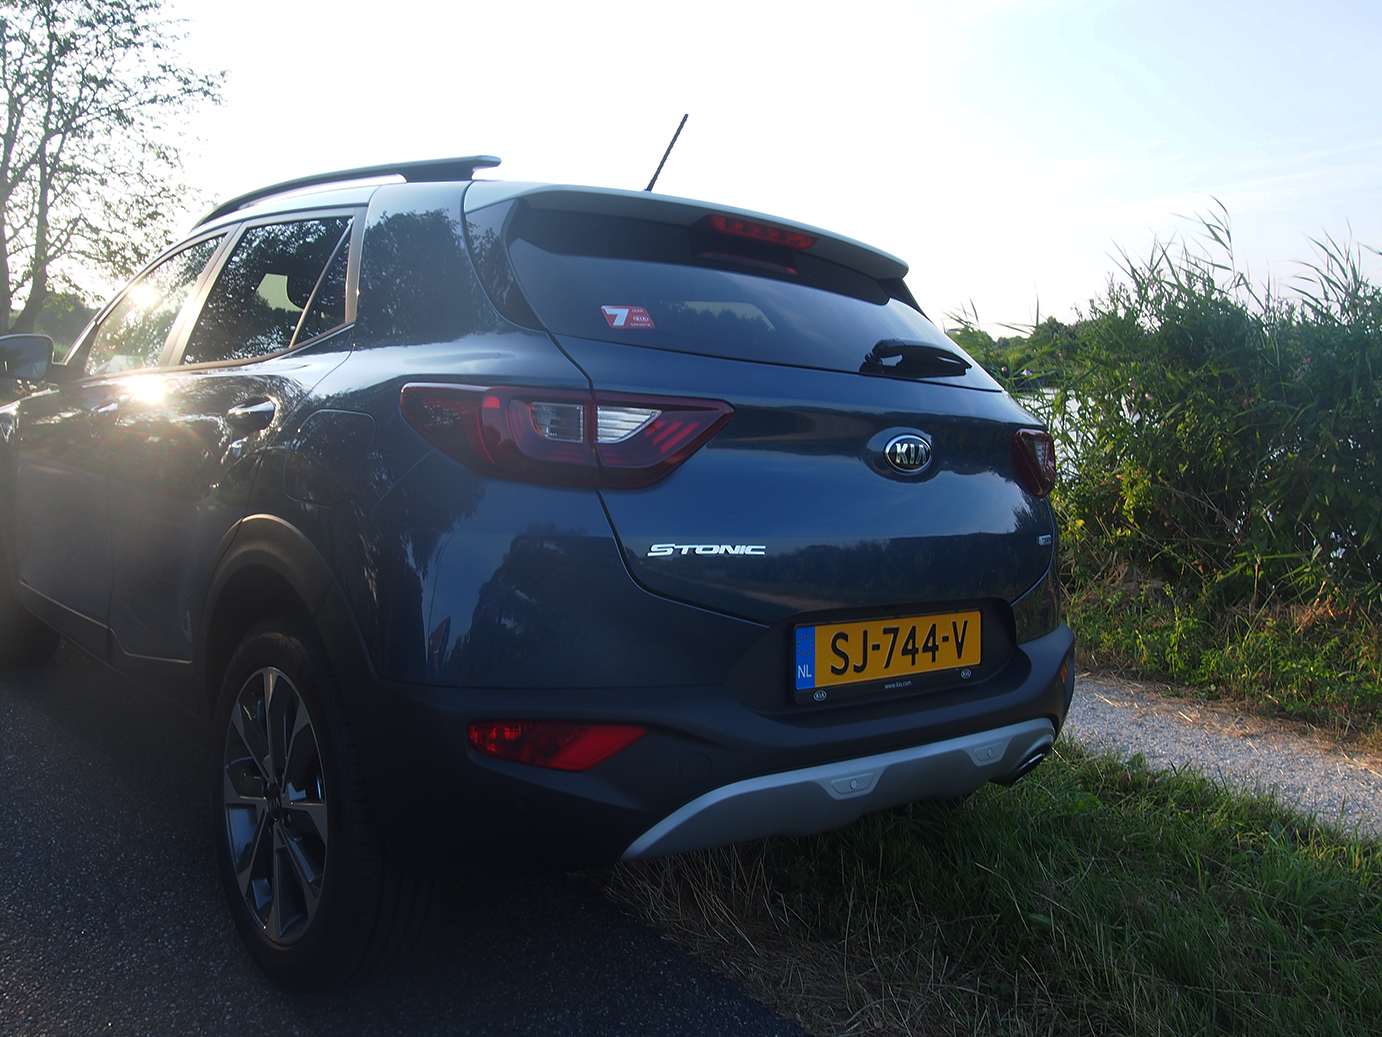 Op mini-roadtrip met de Kia Stonic naar de Molse meren - Daily Cappuccino - Lifestyle Blog